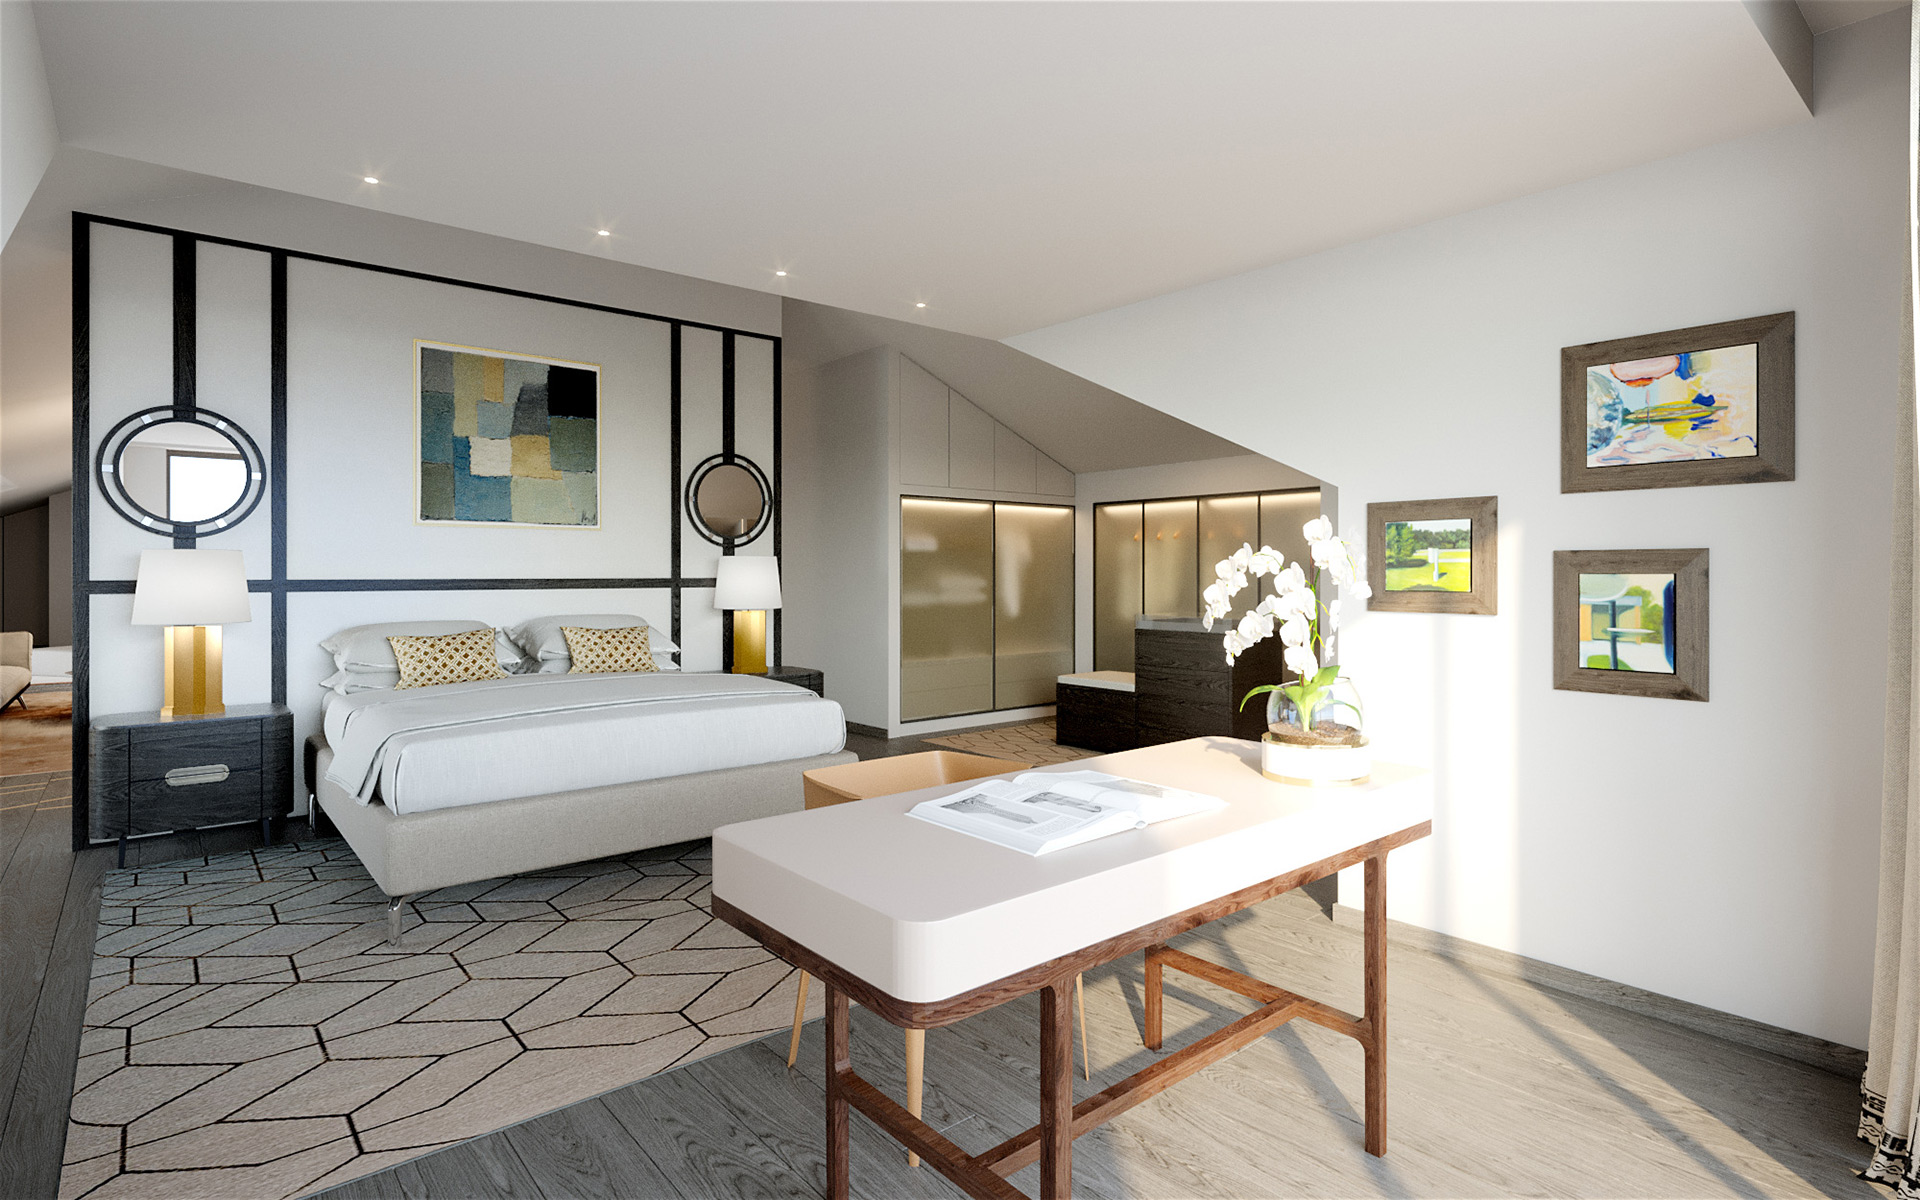 3D Photo of a room for villa real estate development